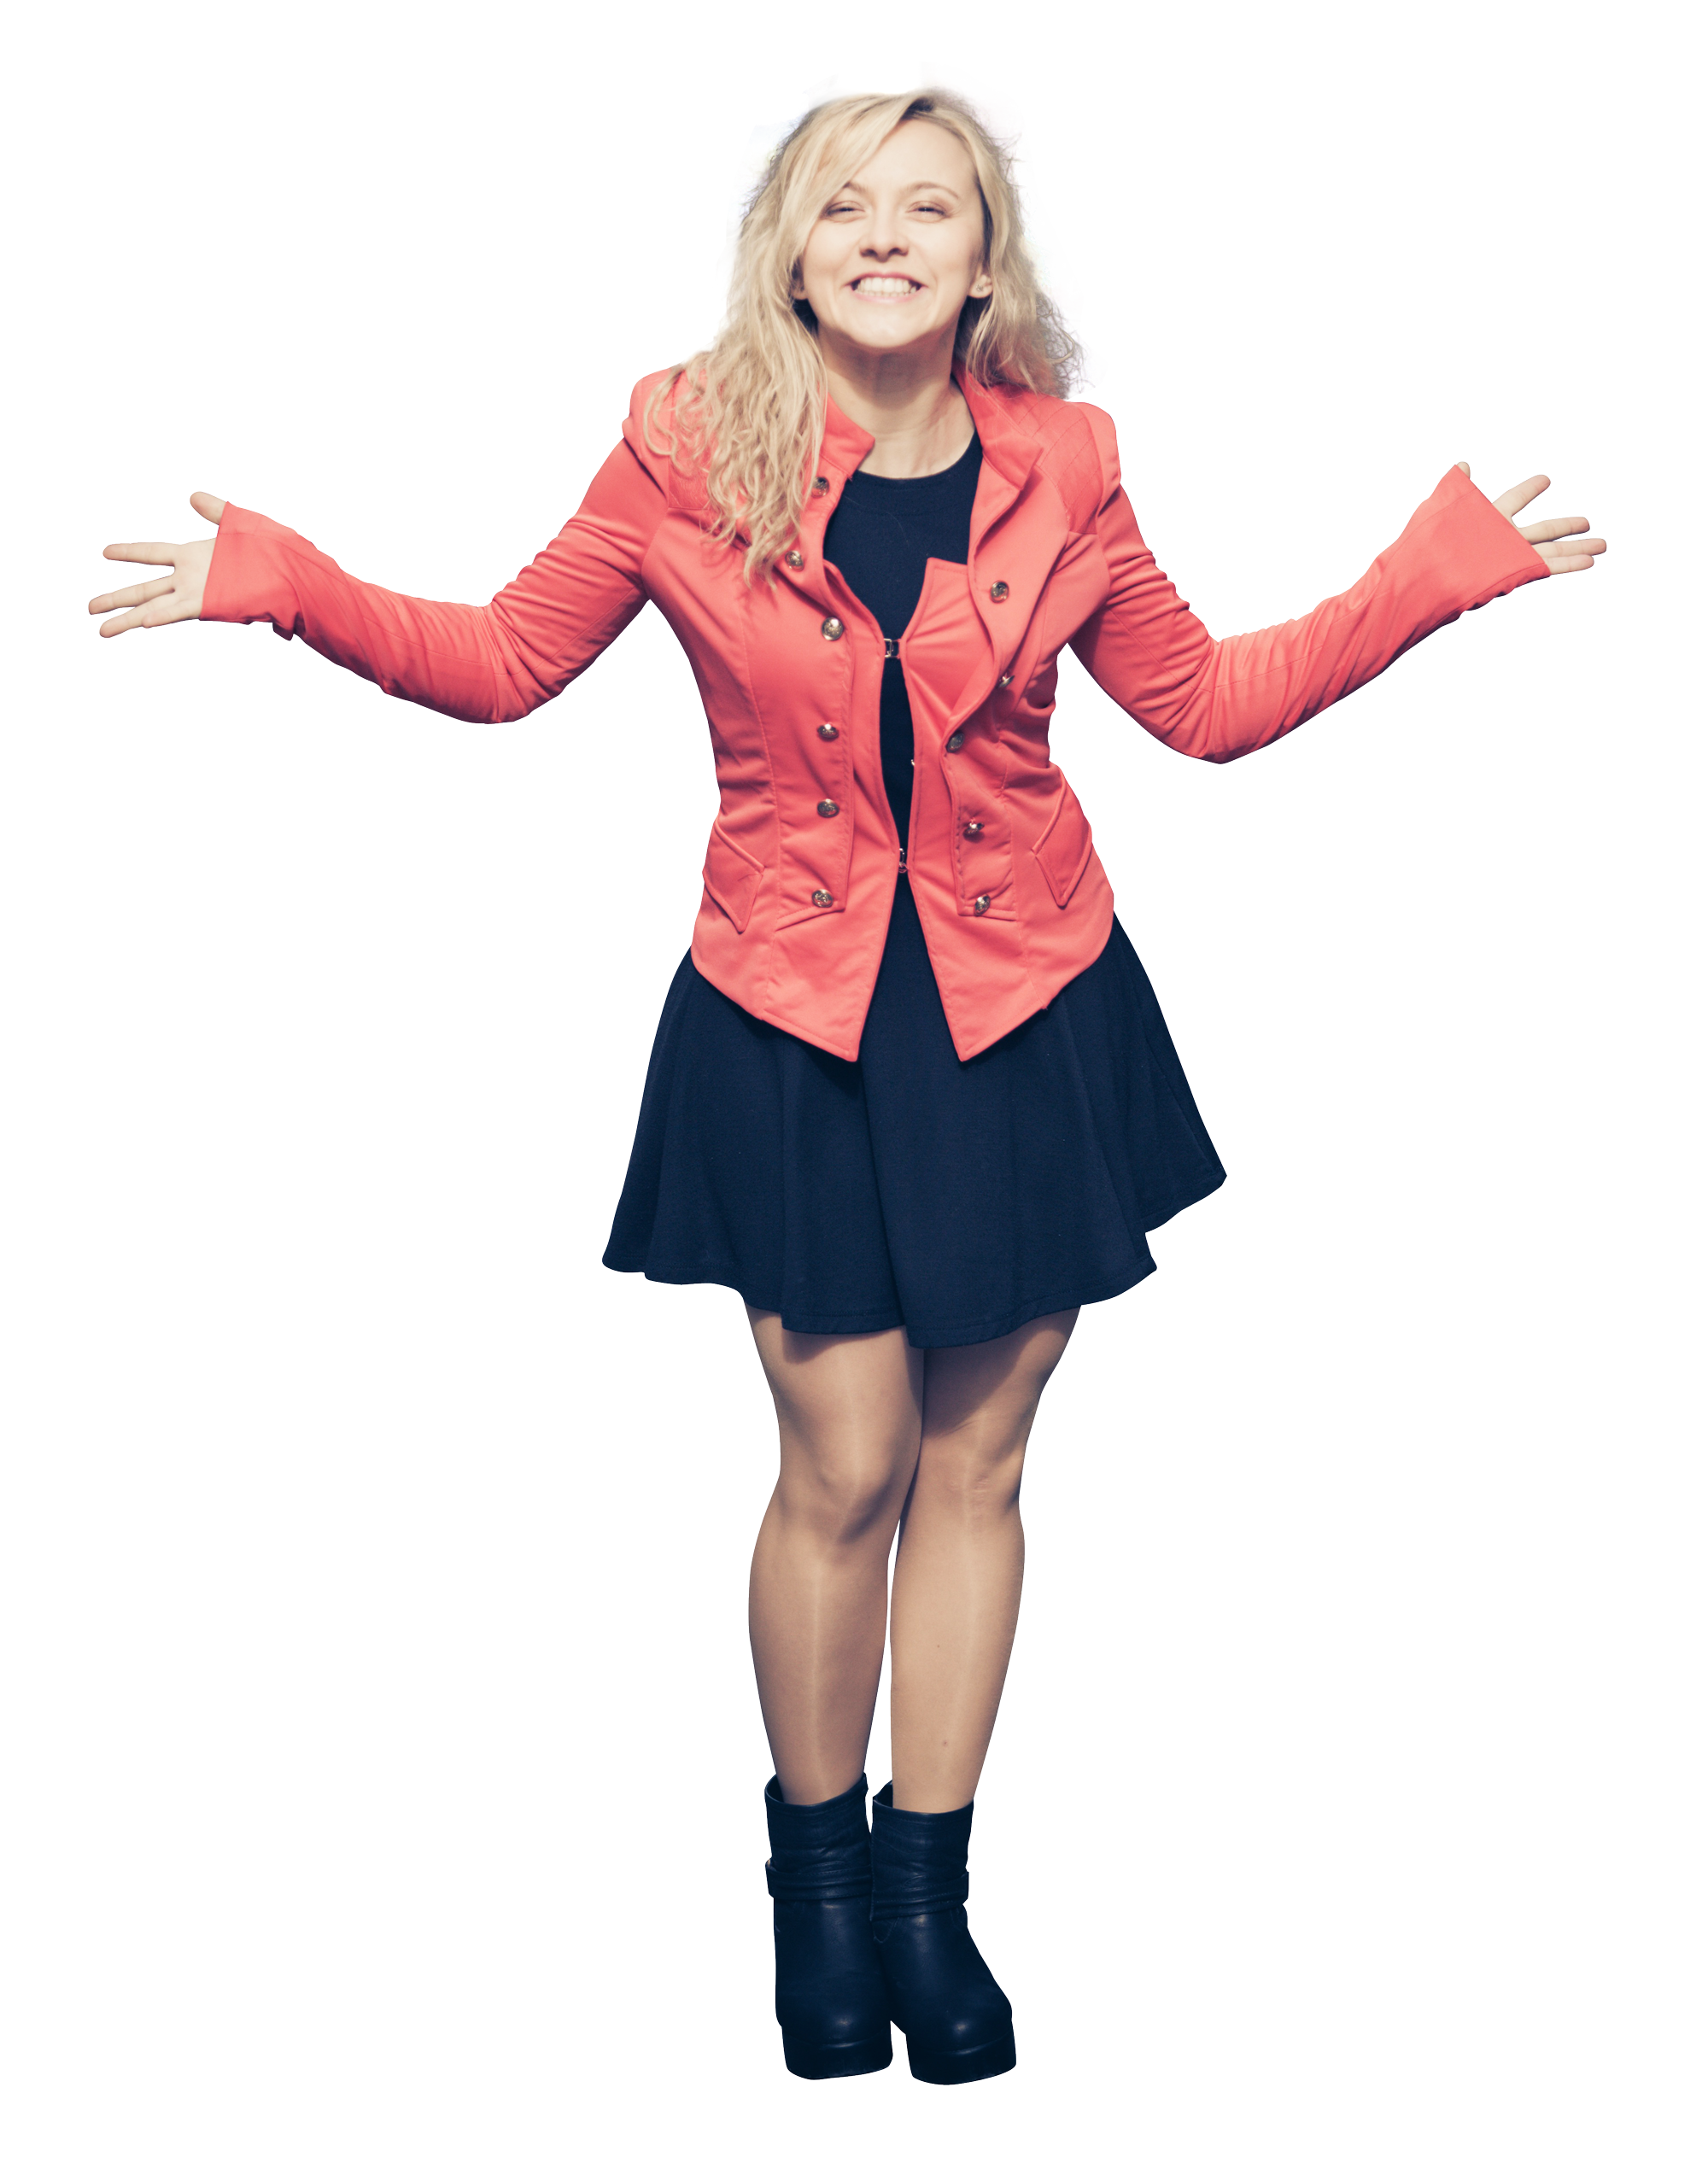 Girl standing png. Happy young woman in